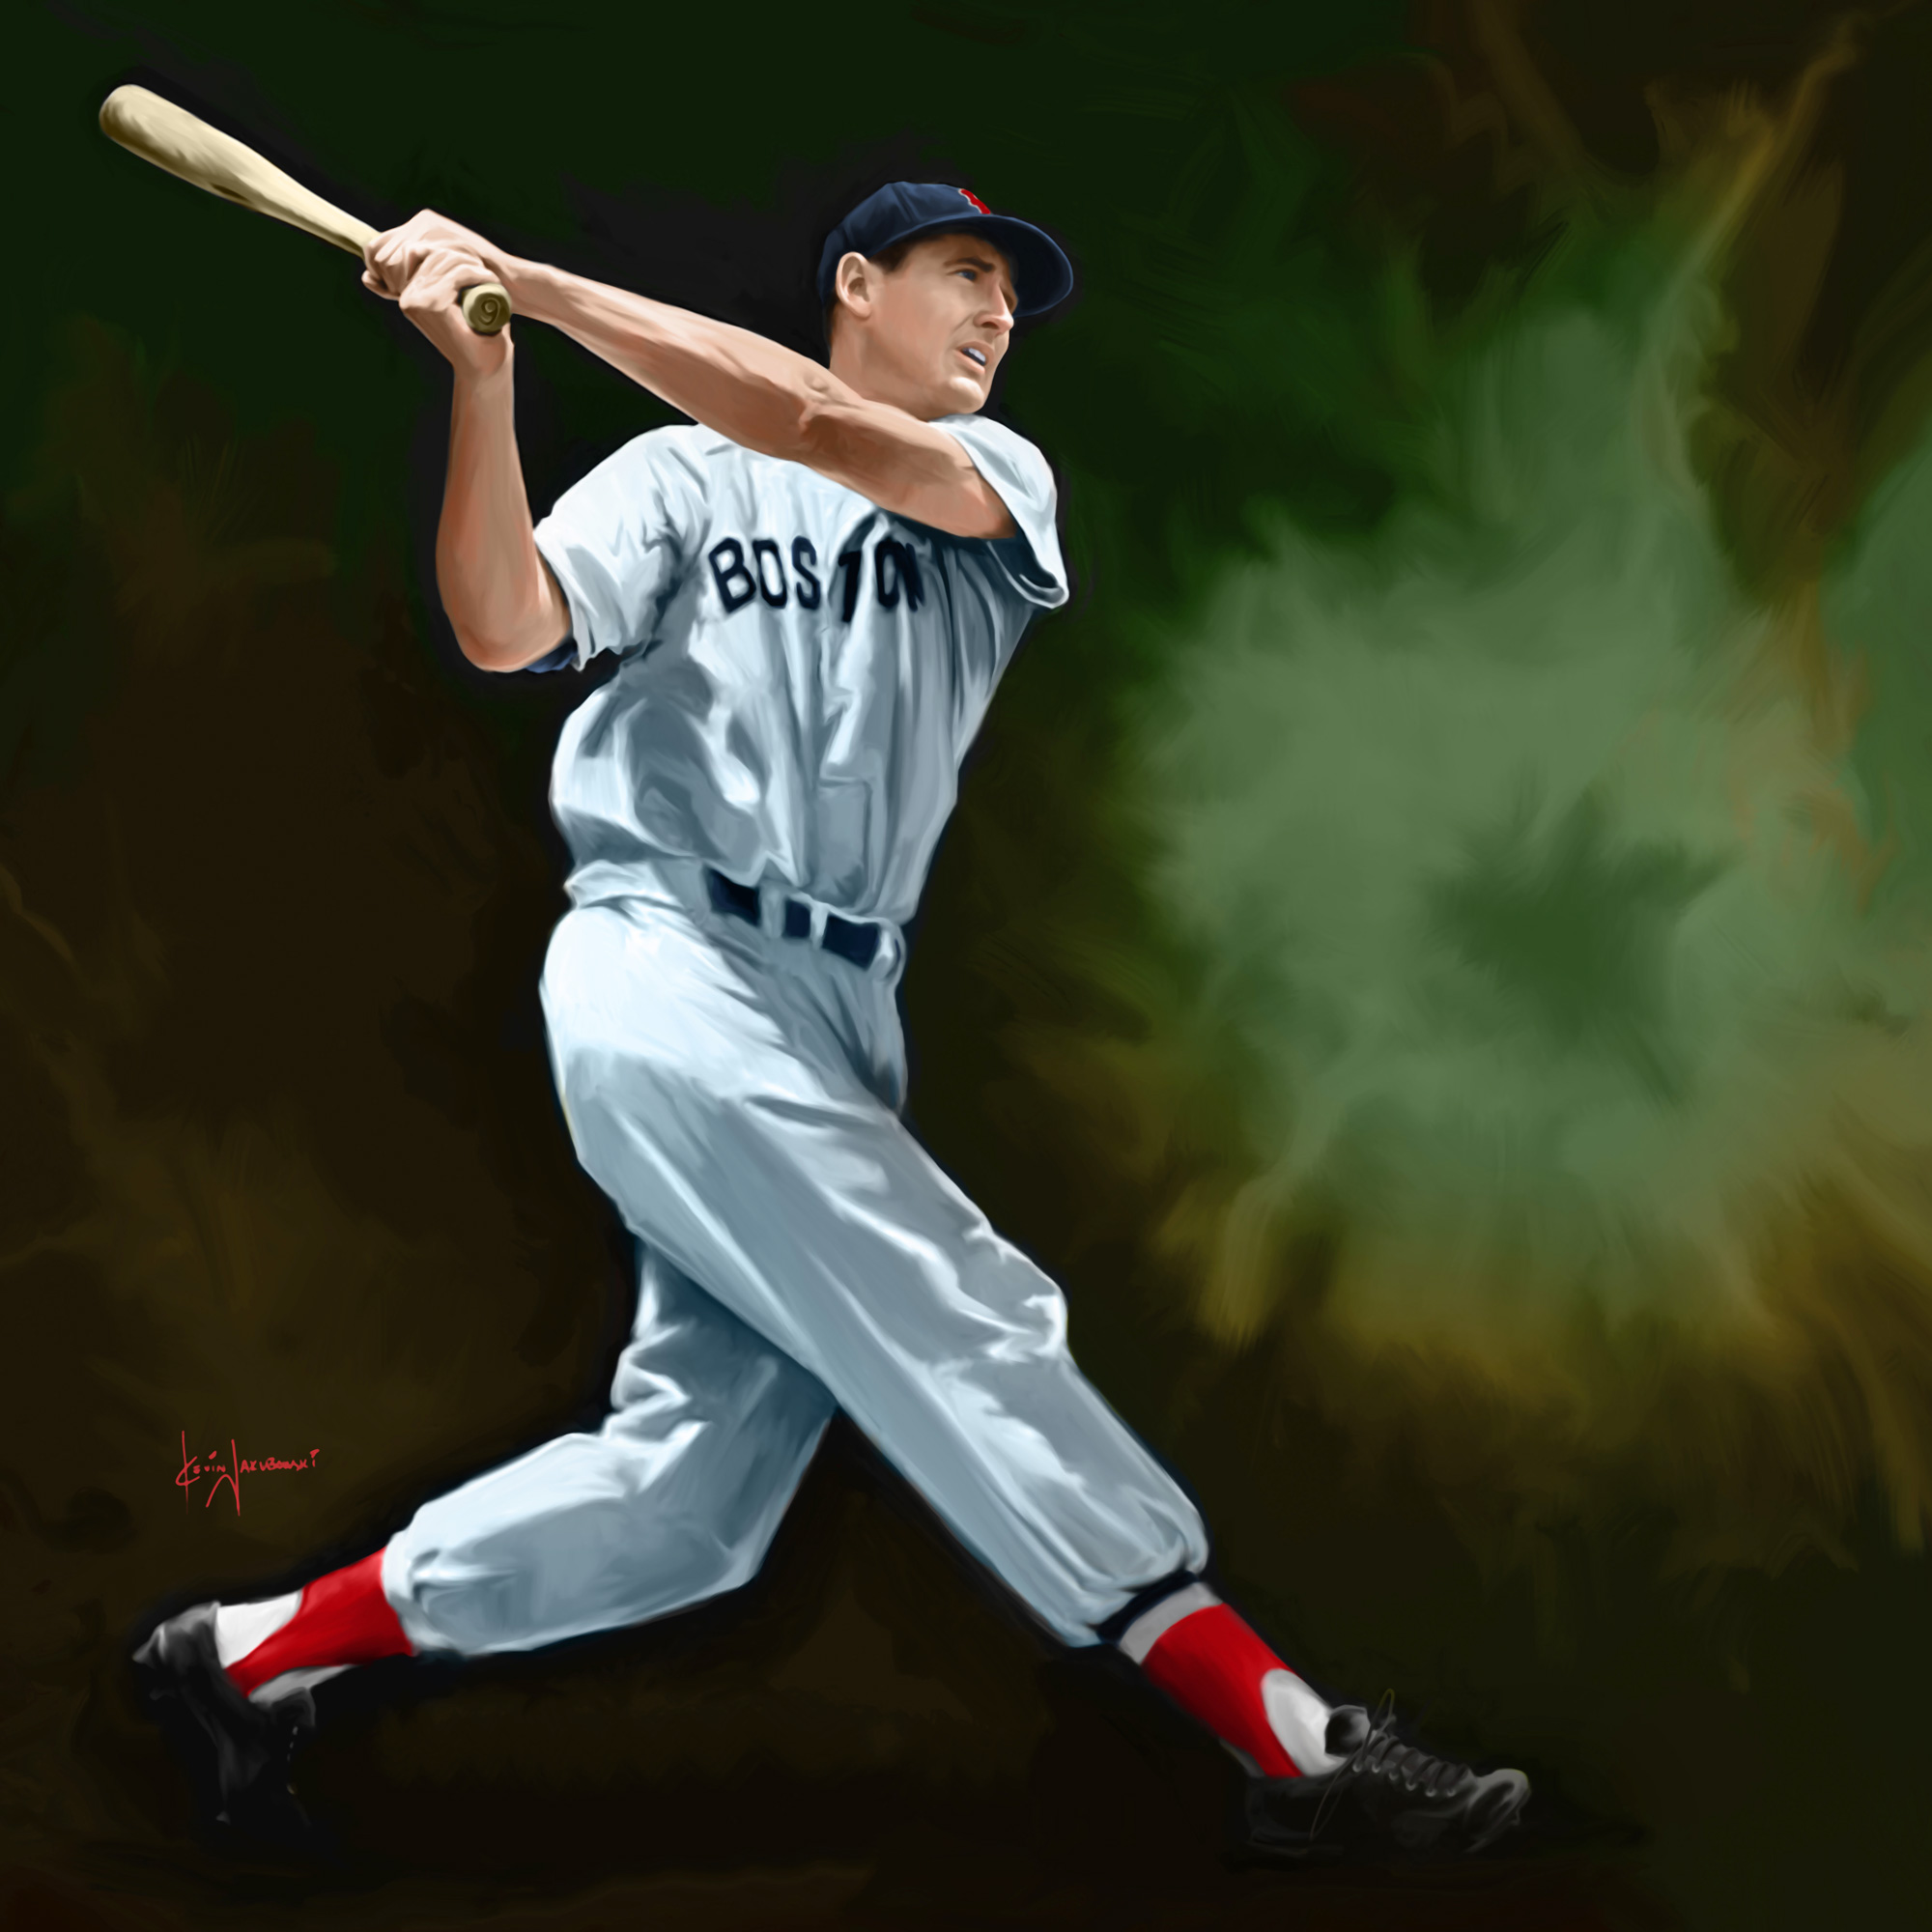 ted-williams-2000px.jpg